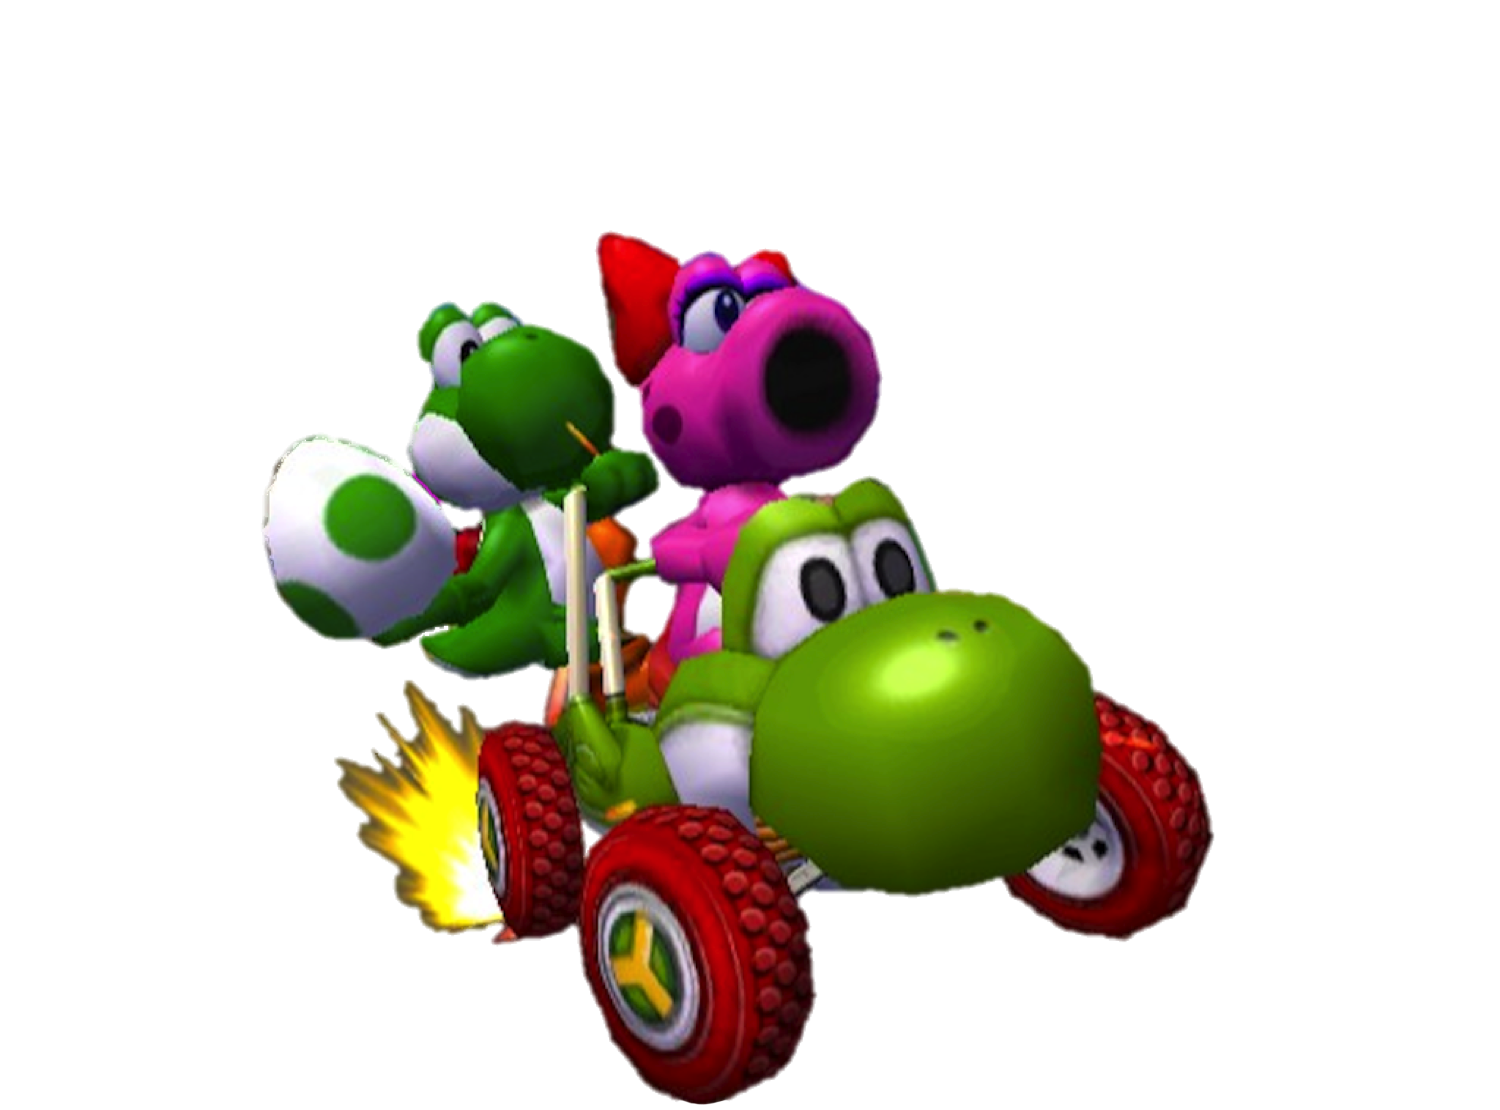 Yoshi mario kart png. Double dash images and